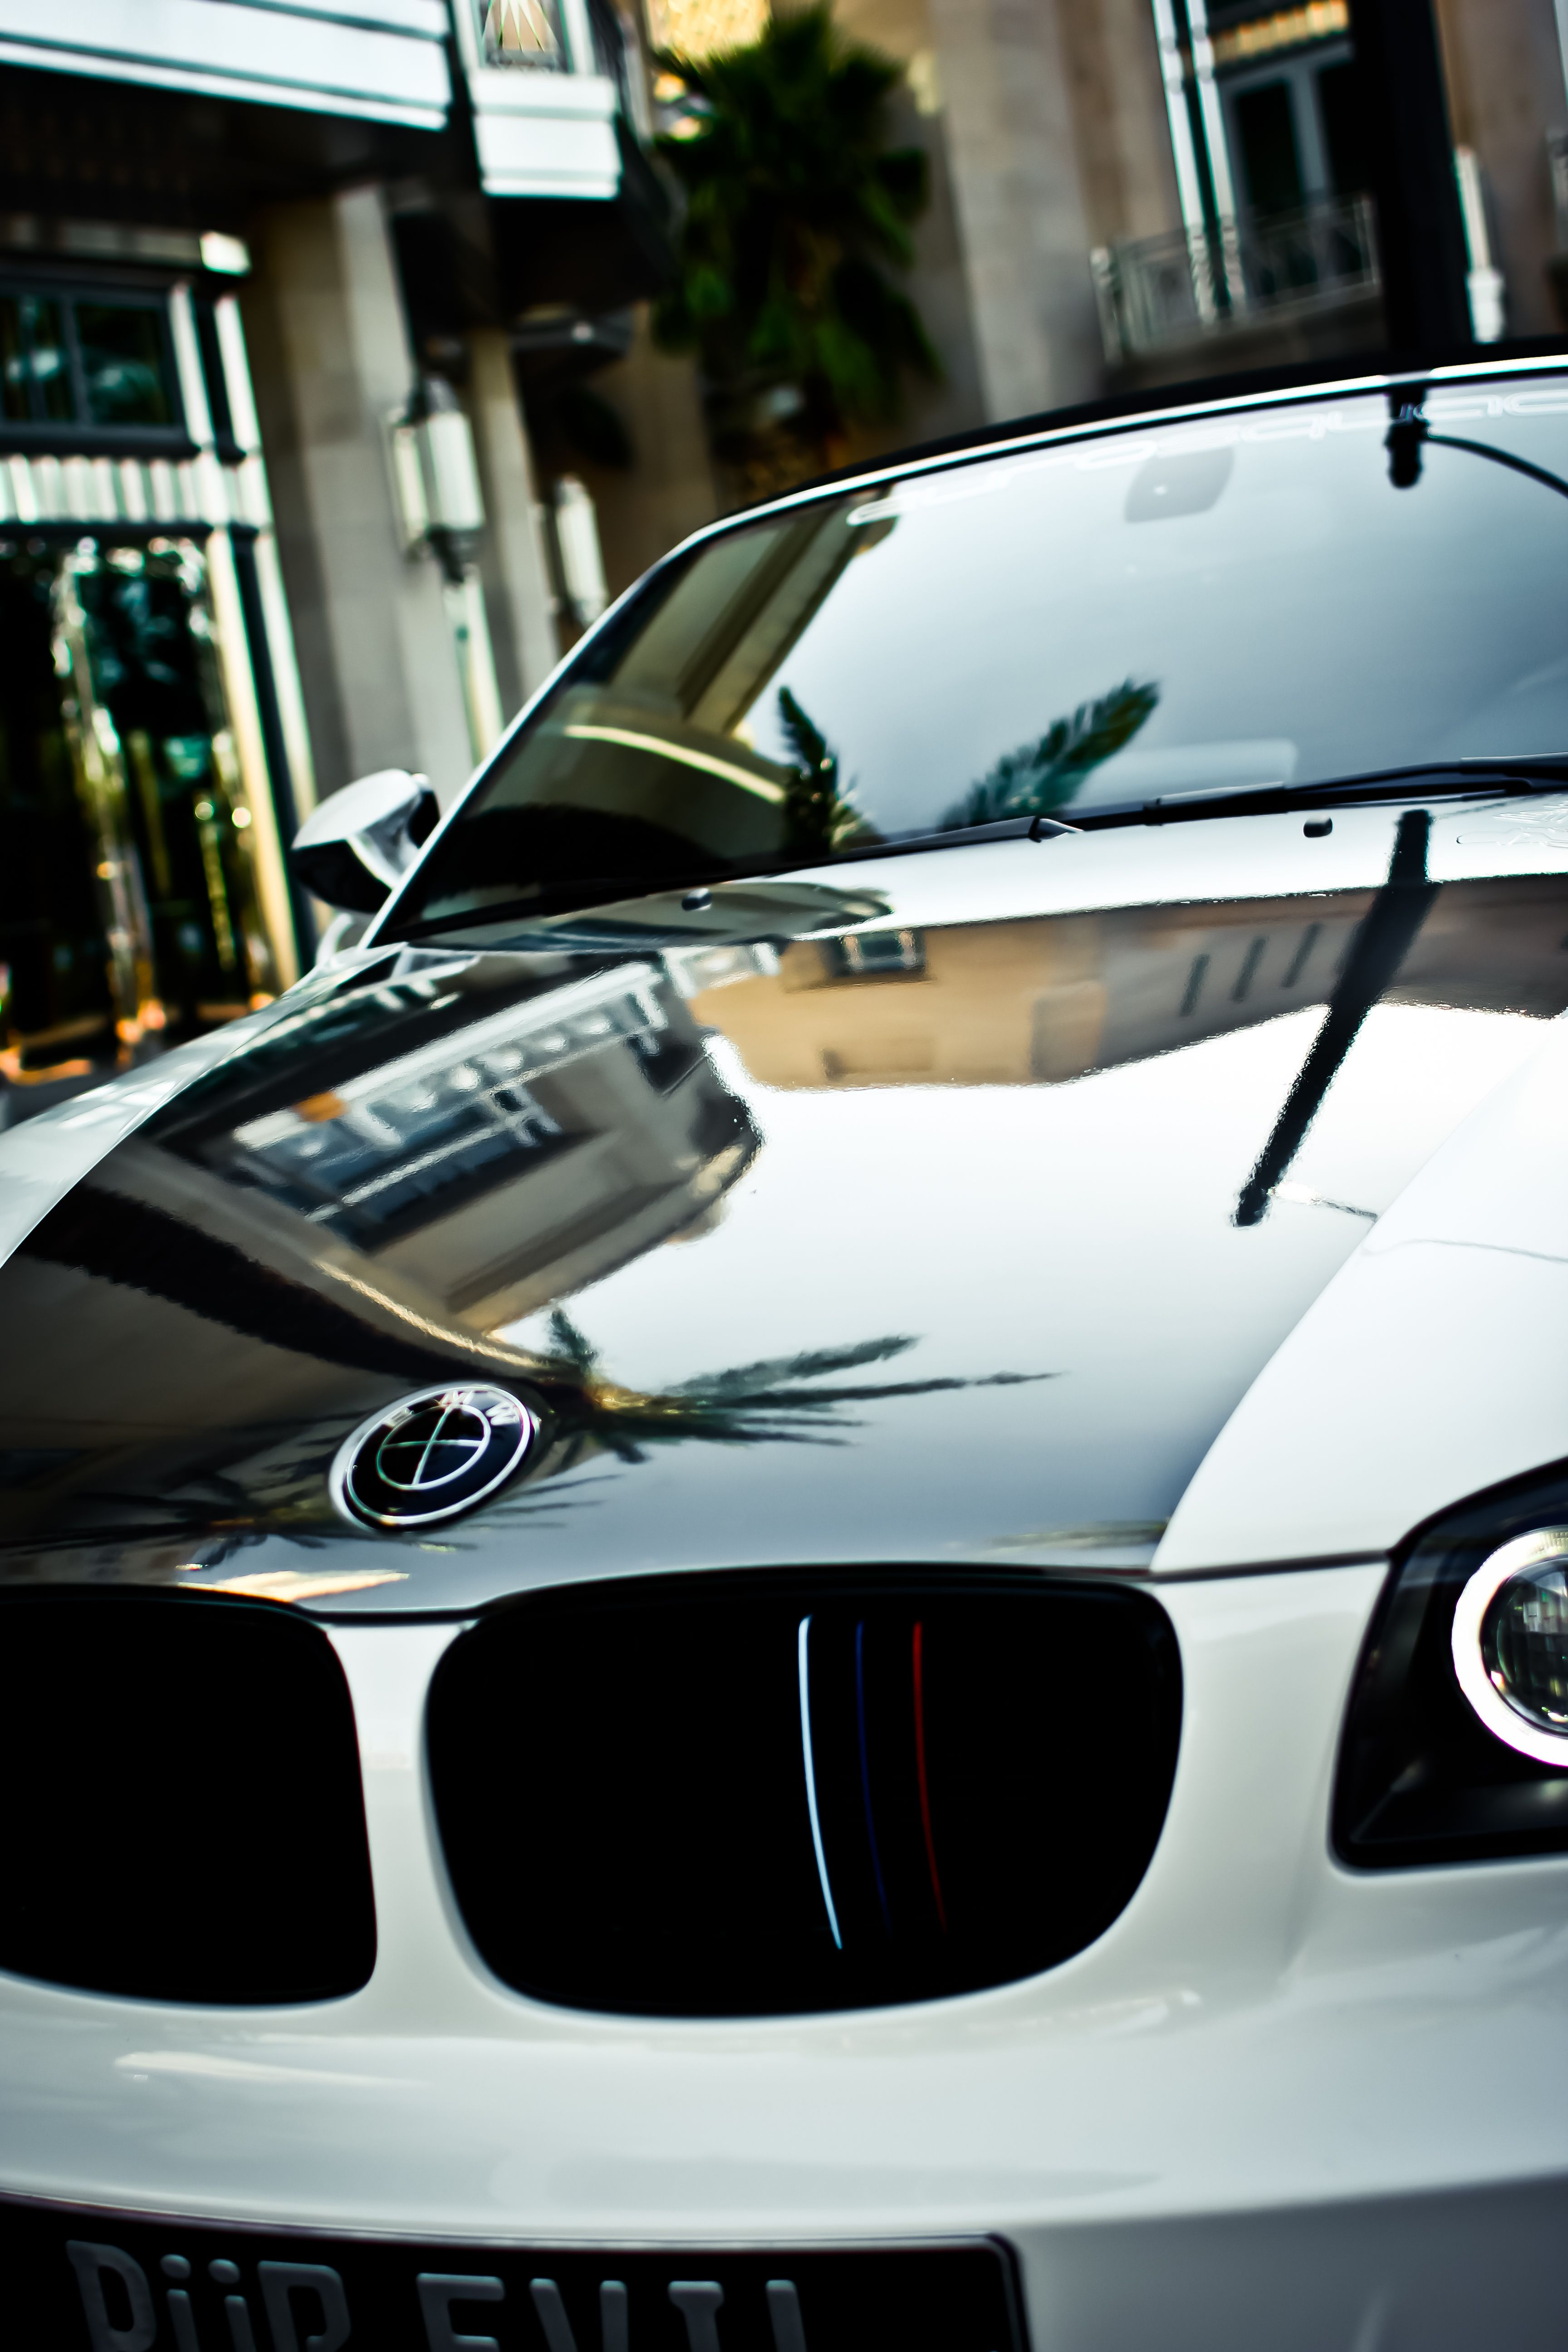 Bmw 1 Series Wrapped By Incognito Wraps In Avery Dennison Black